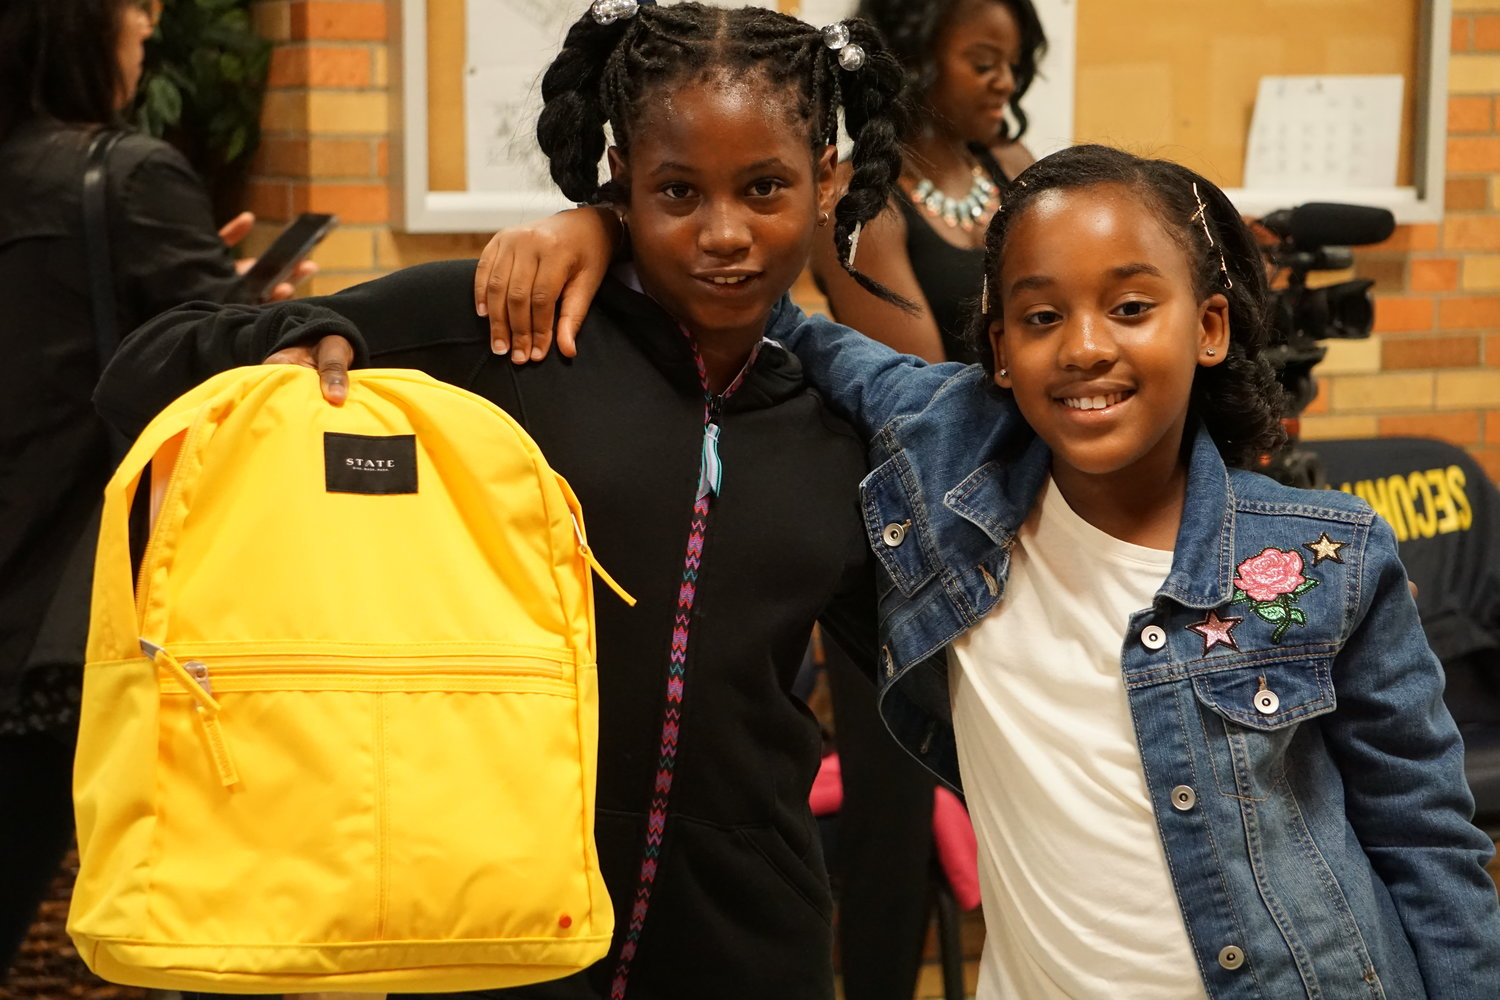 Malia Sterling, left, and Briana Cole, both 10, were two of the recipients of more than 400 backpacks donated to Shaw Avenue Elementary School on Oct. 3 by State Sen. Todd Kaminsky and STATE Bags.